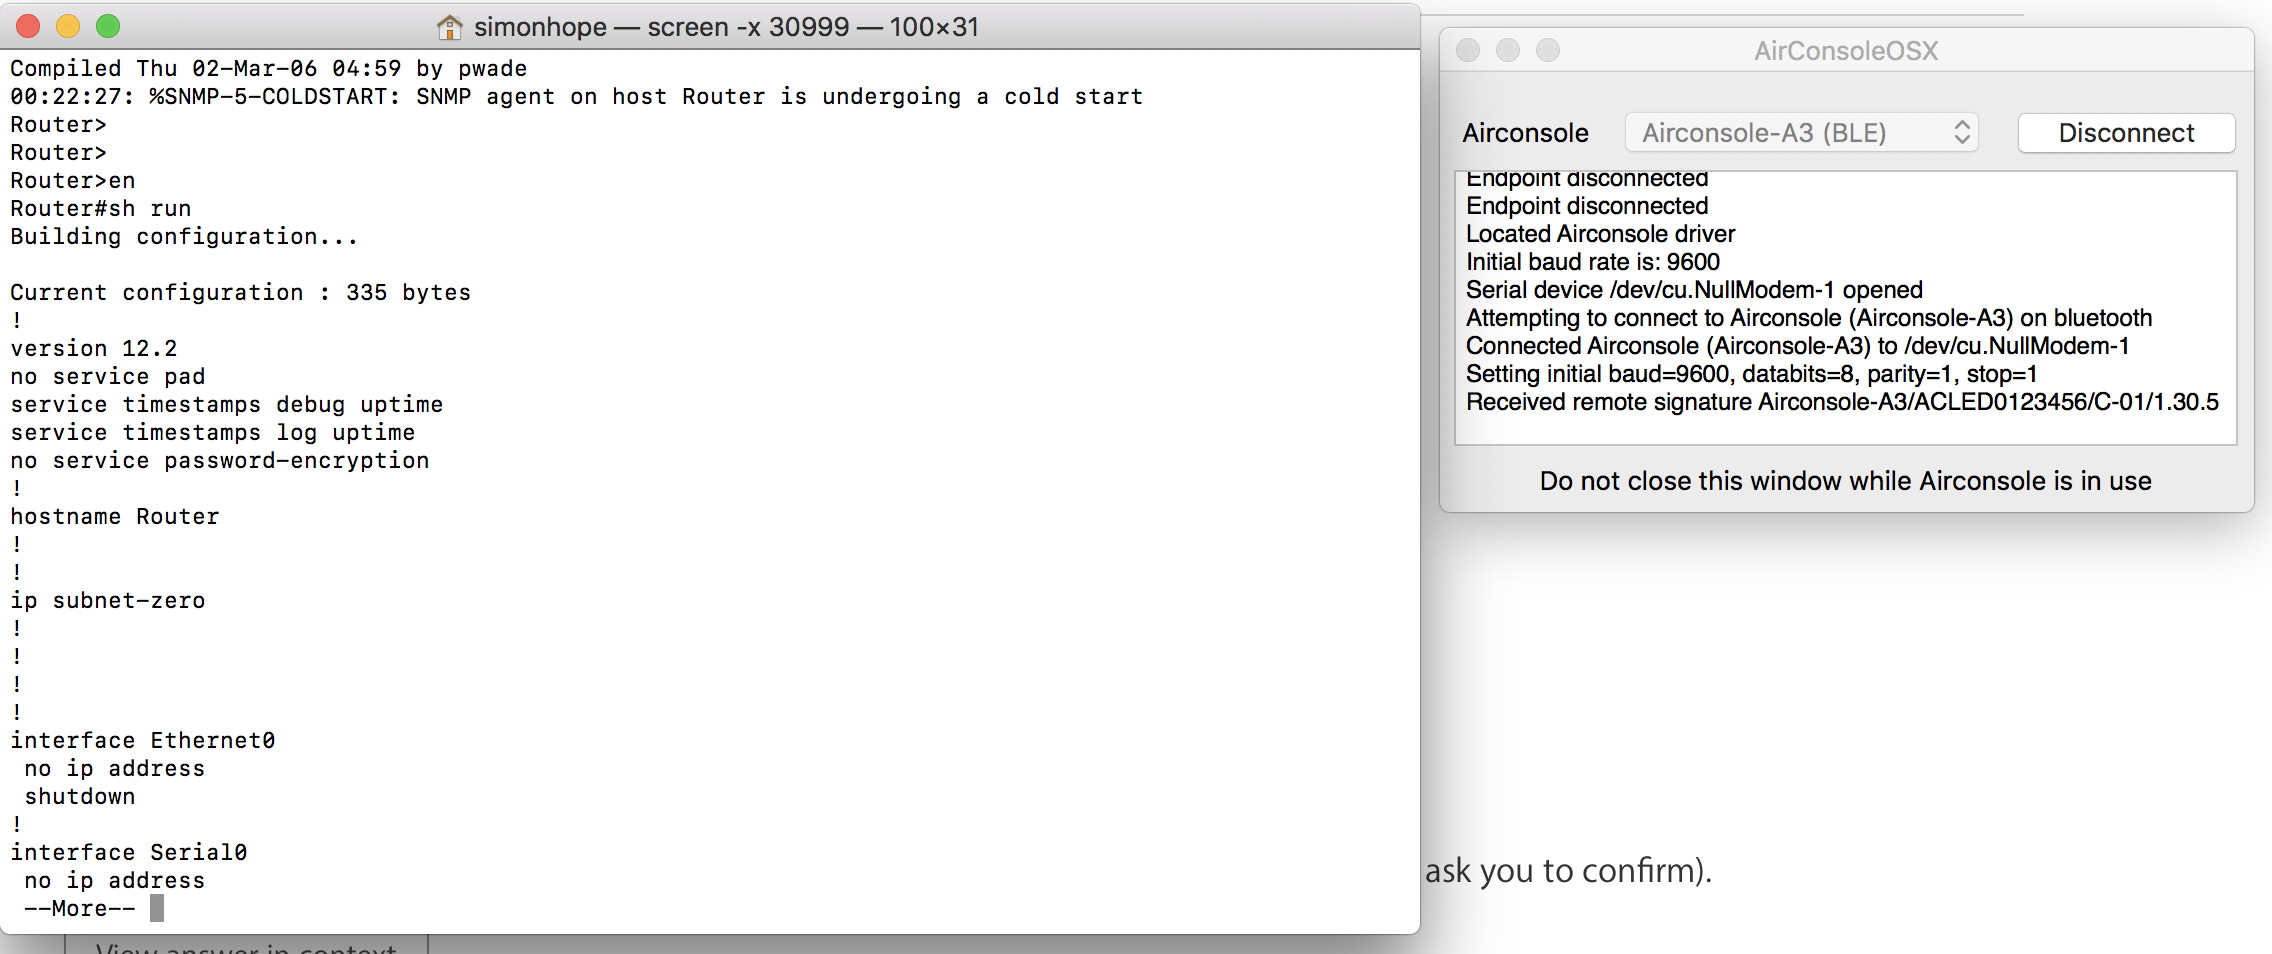 Resource Busy error with Screen in OSX - Troubleshooting a